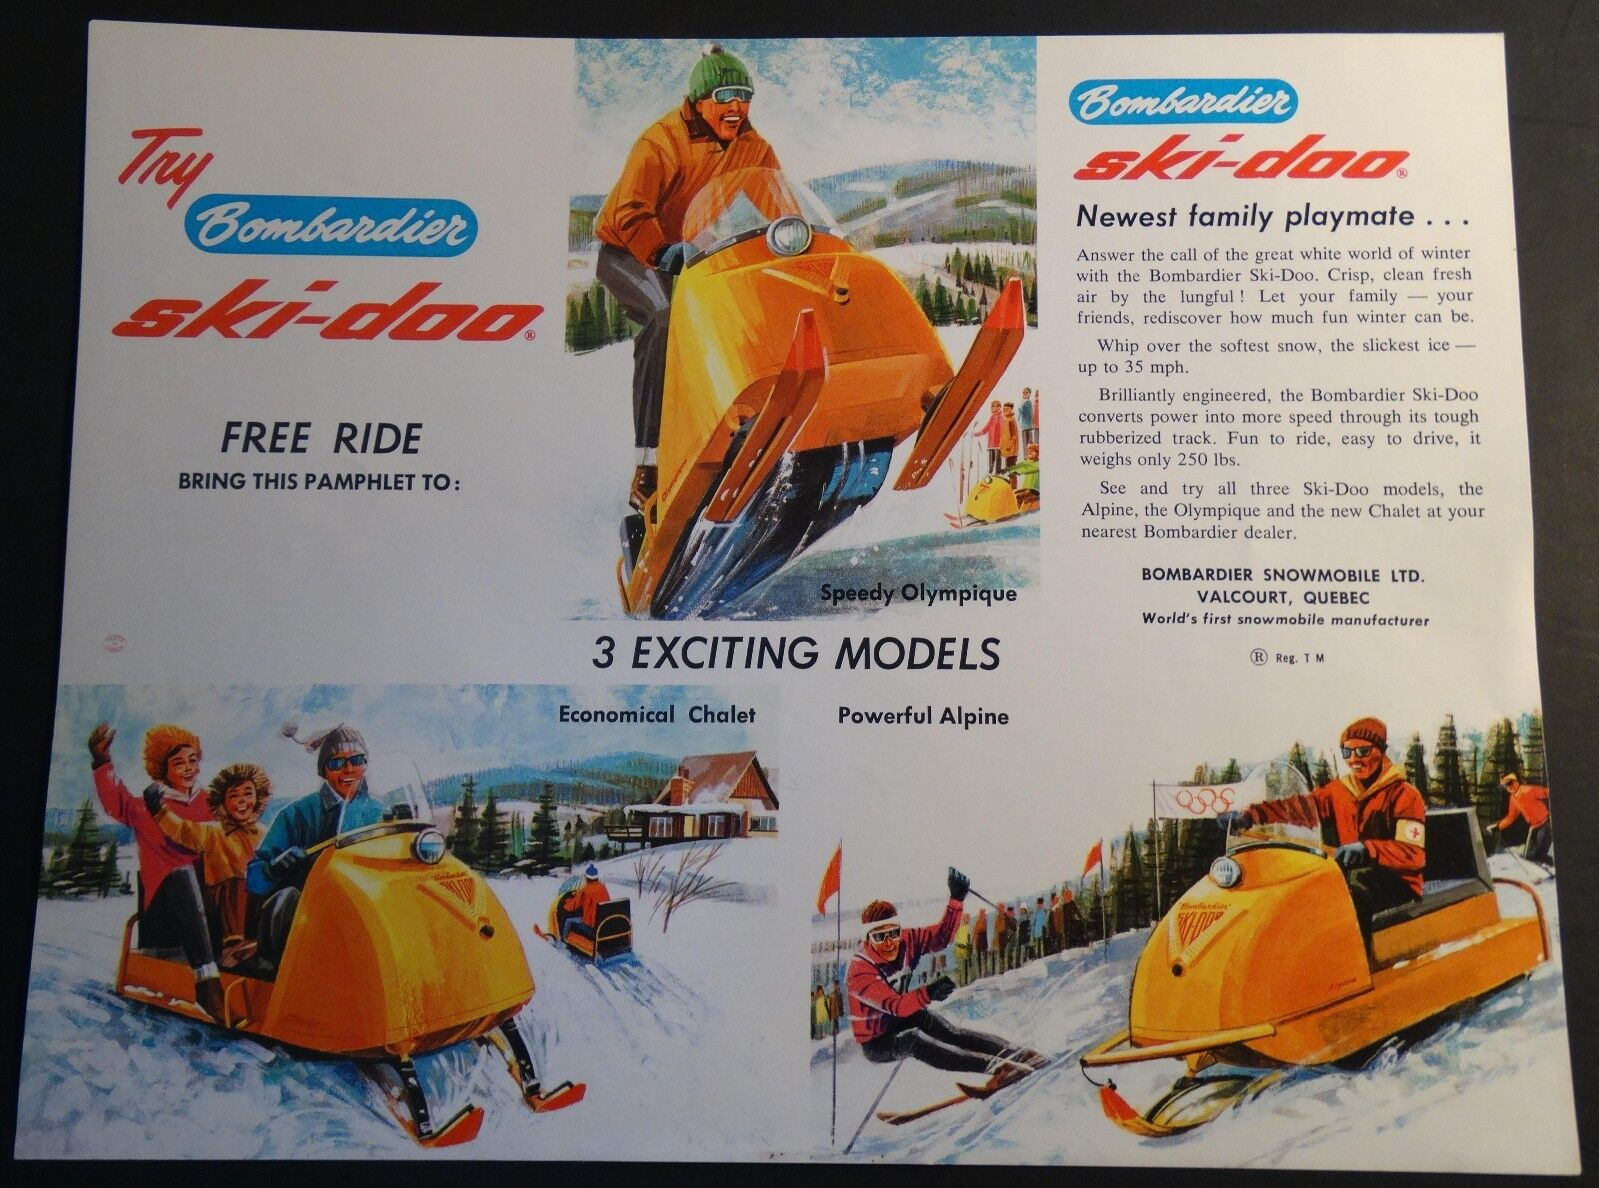 ORIGINAL VINTAGE BOMBARDIER SKI-DOO SNOWMOBILE SALES BROCHURE SINGLE PAGE (107)